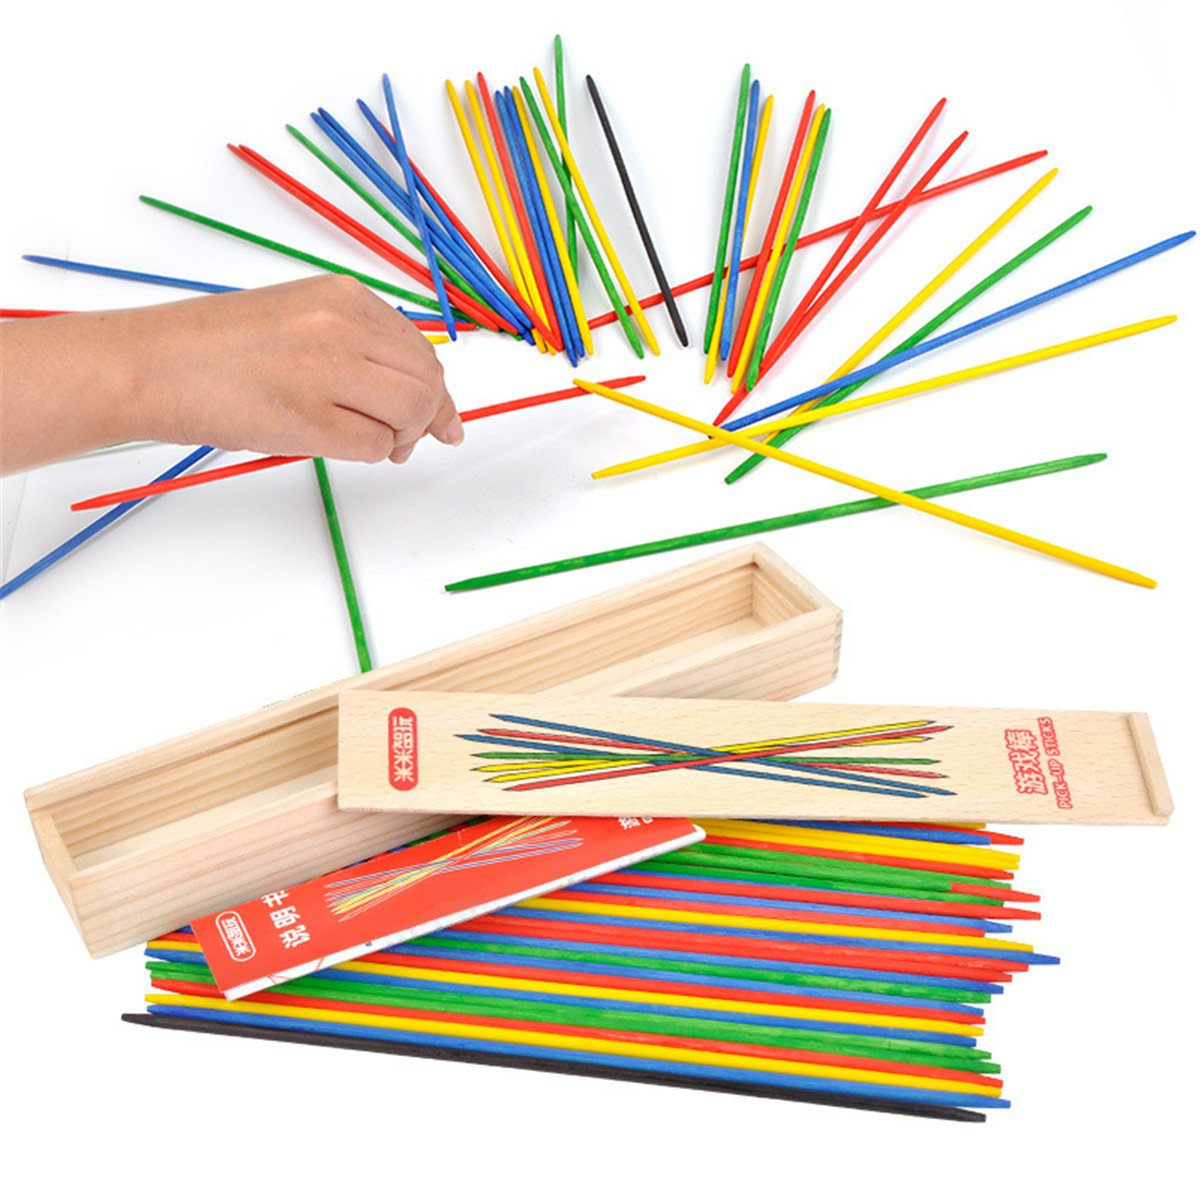 classic game,Classic Wooden Thin Pick Up Stick Game 41 Pieces Fun Family Game Gift Idea --9.8 Inch Long (I Pack) BTJP